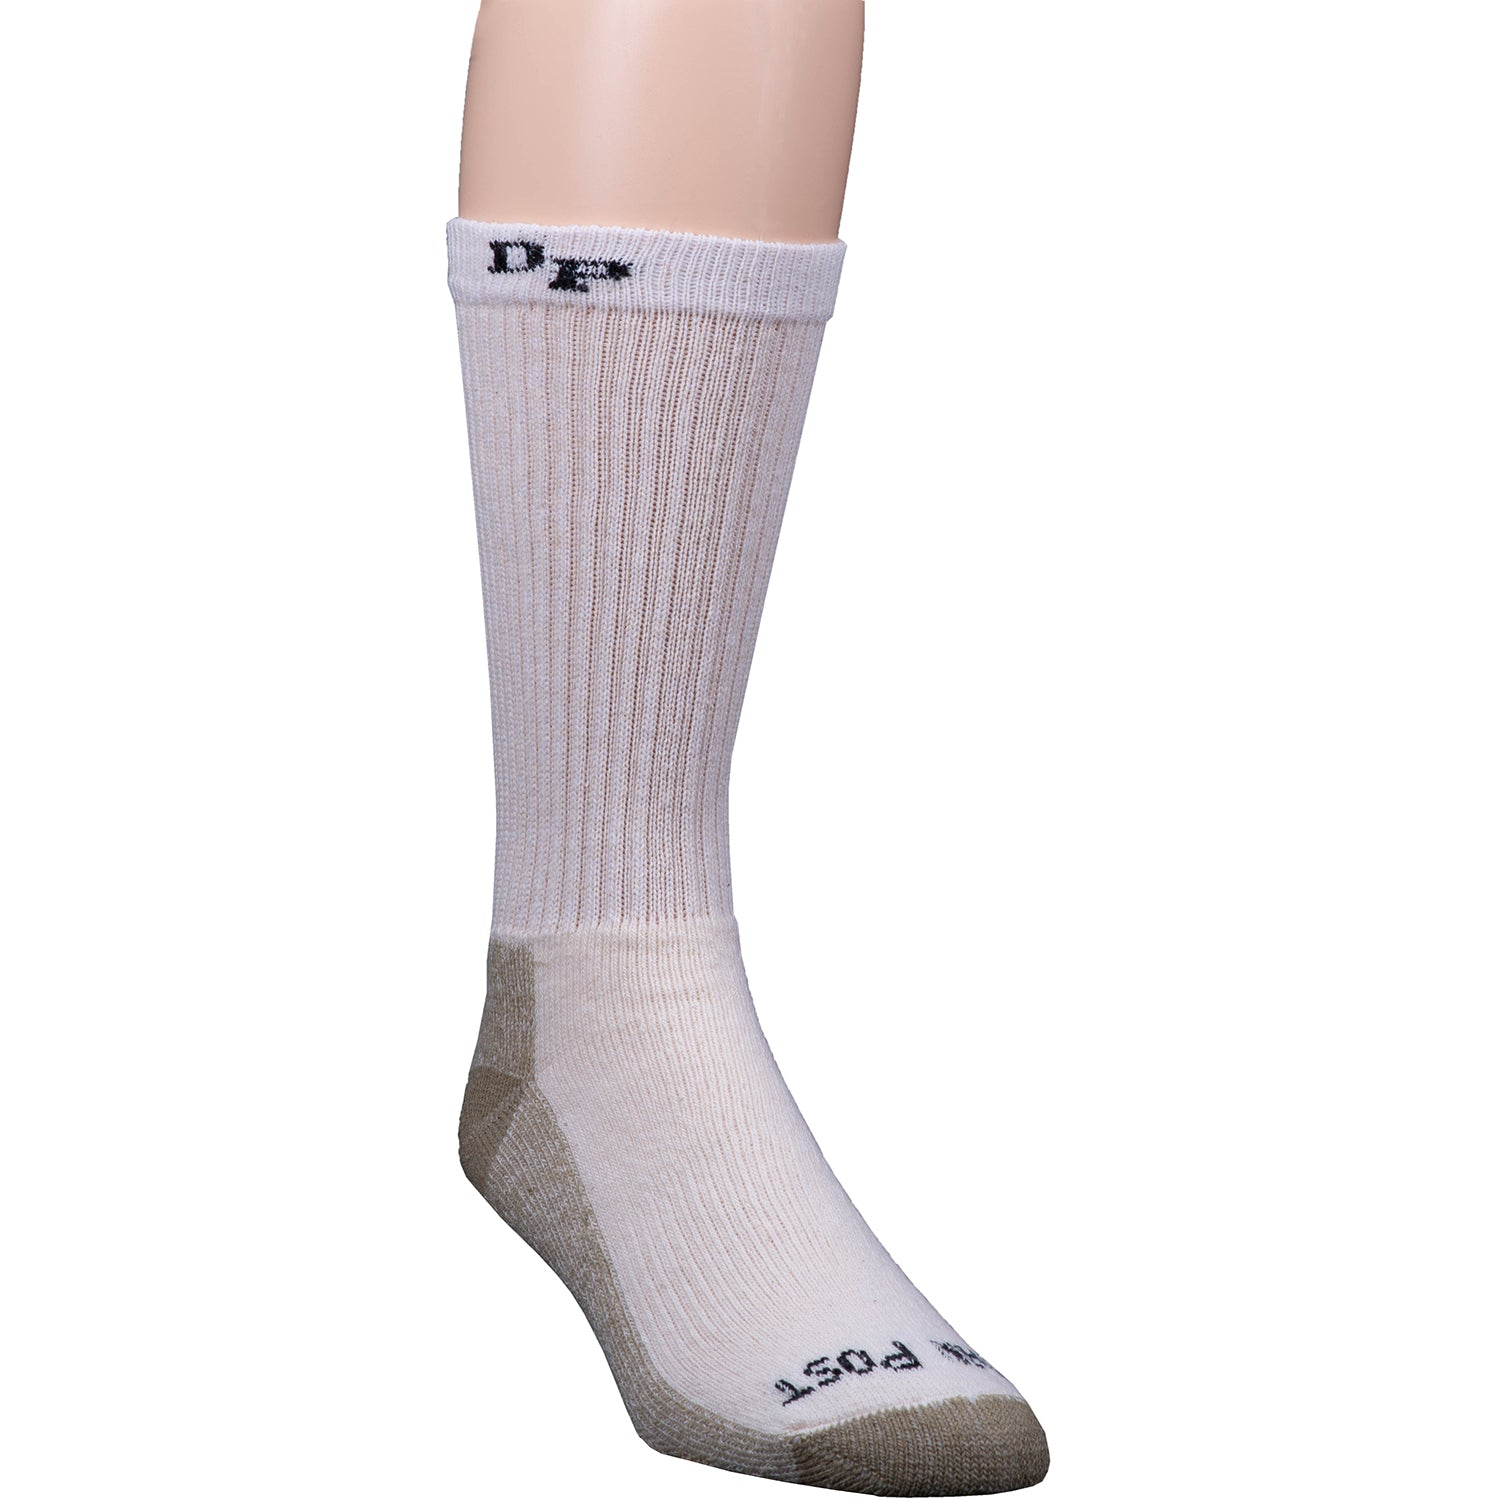 MEDIUM WEIGHT SOCKS - Dan Post Boots